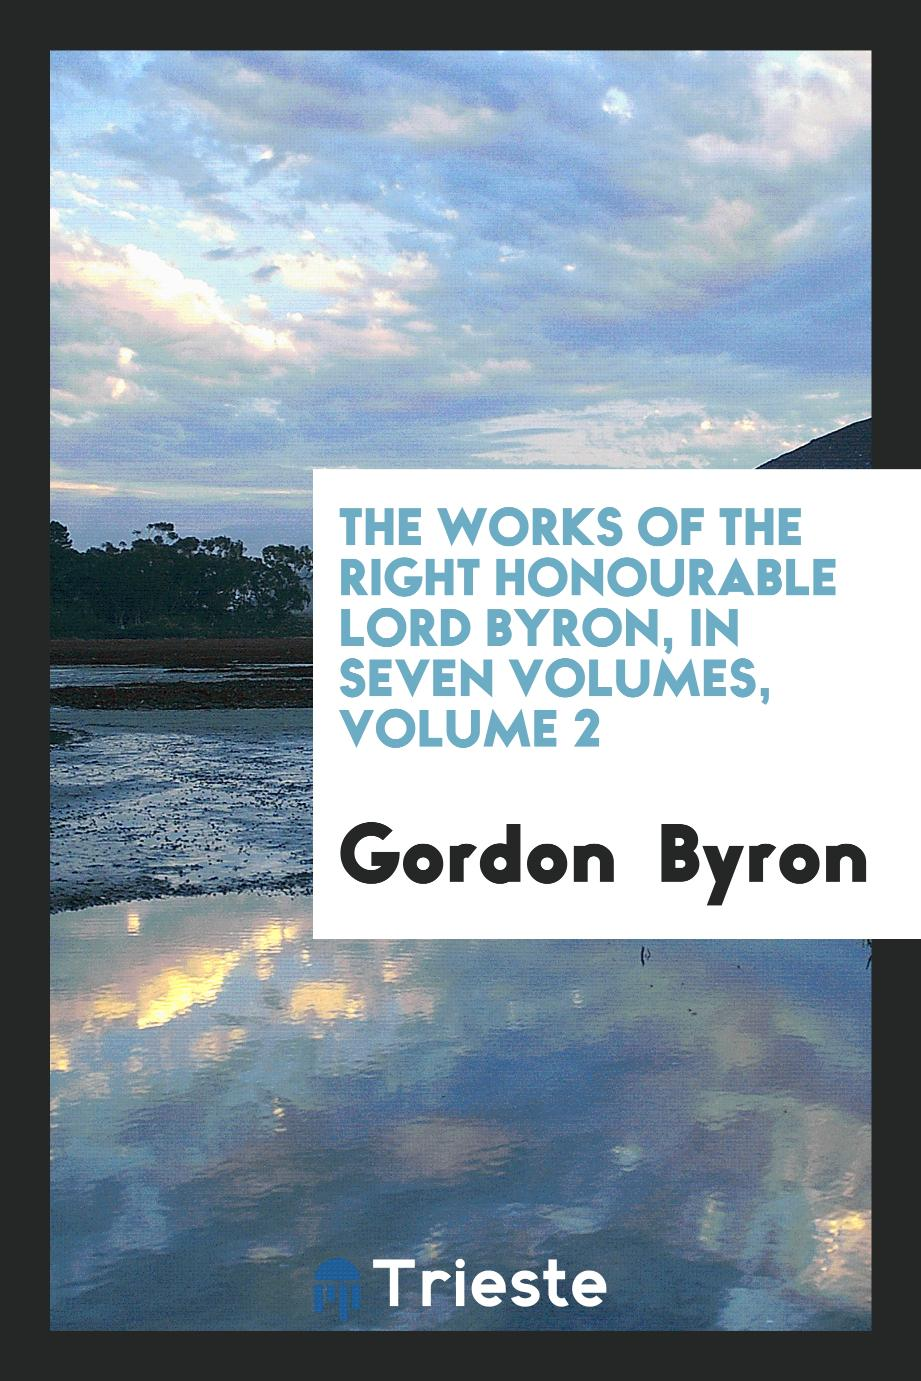 The Works of the Right Honourable Lord Byron, in Seven Volumes, Volume 2